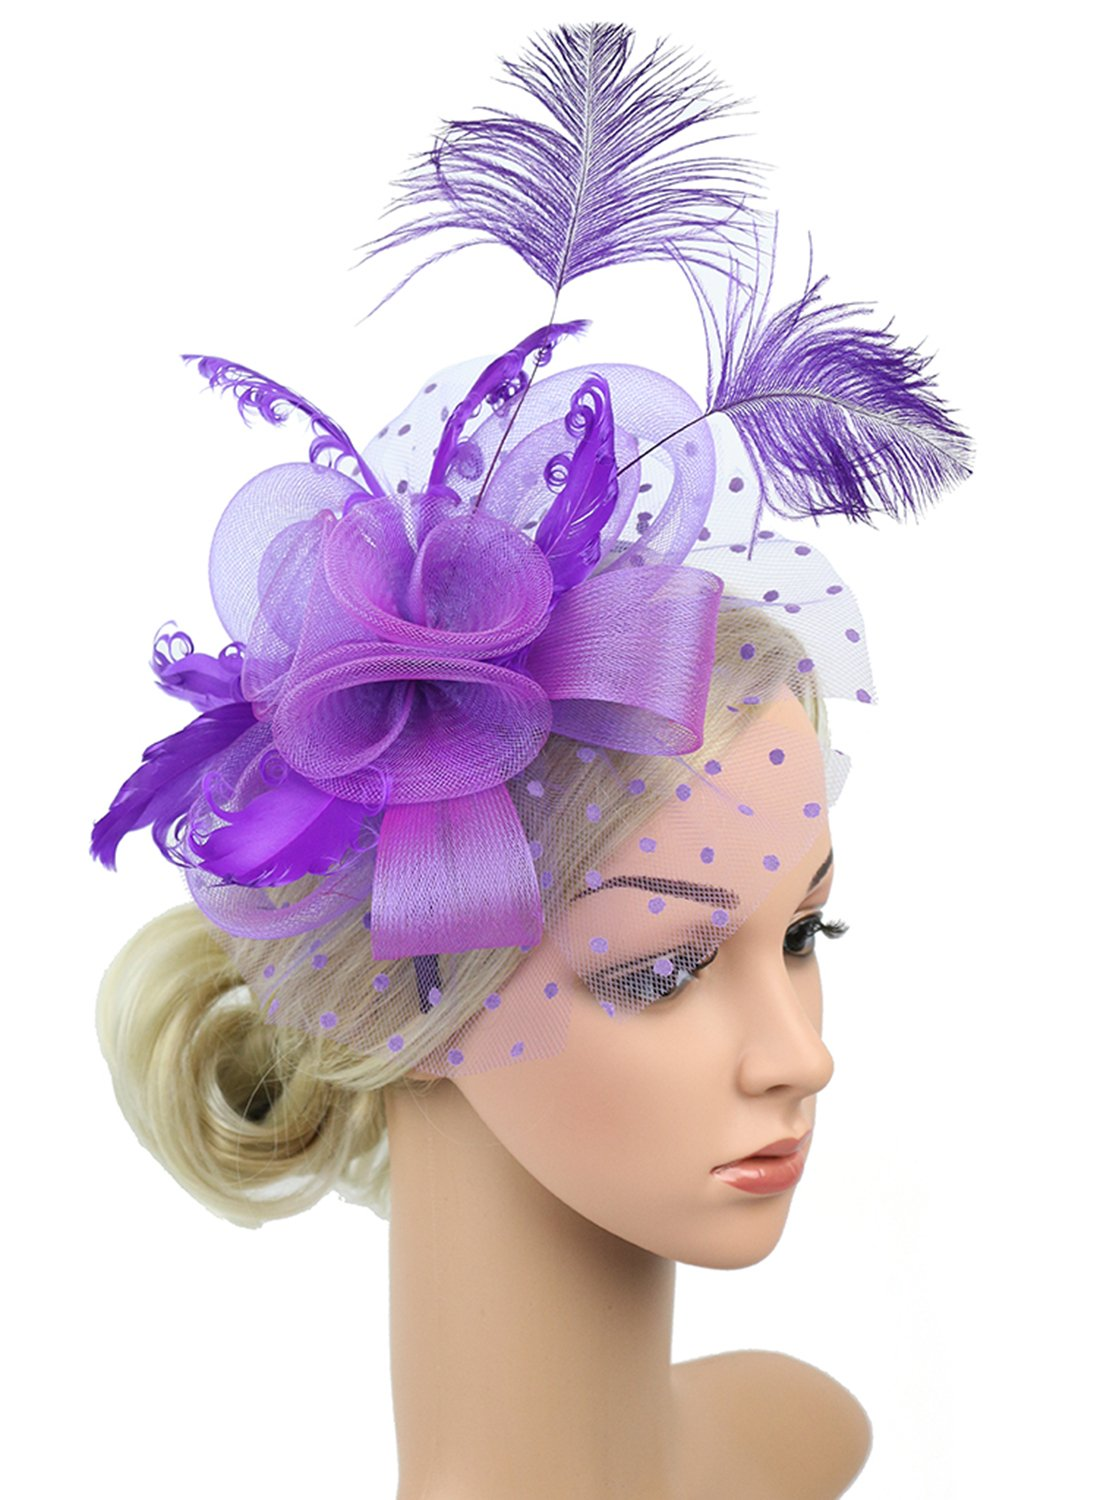 Z&X Fascinator with Headband Clip Cocktail Tea Party Feather Floral Pillbox Hat Black (Fascinator 4- Purple)